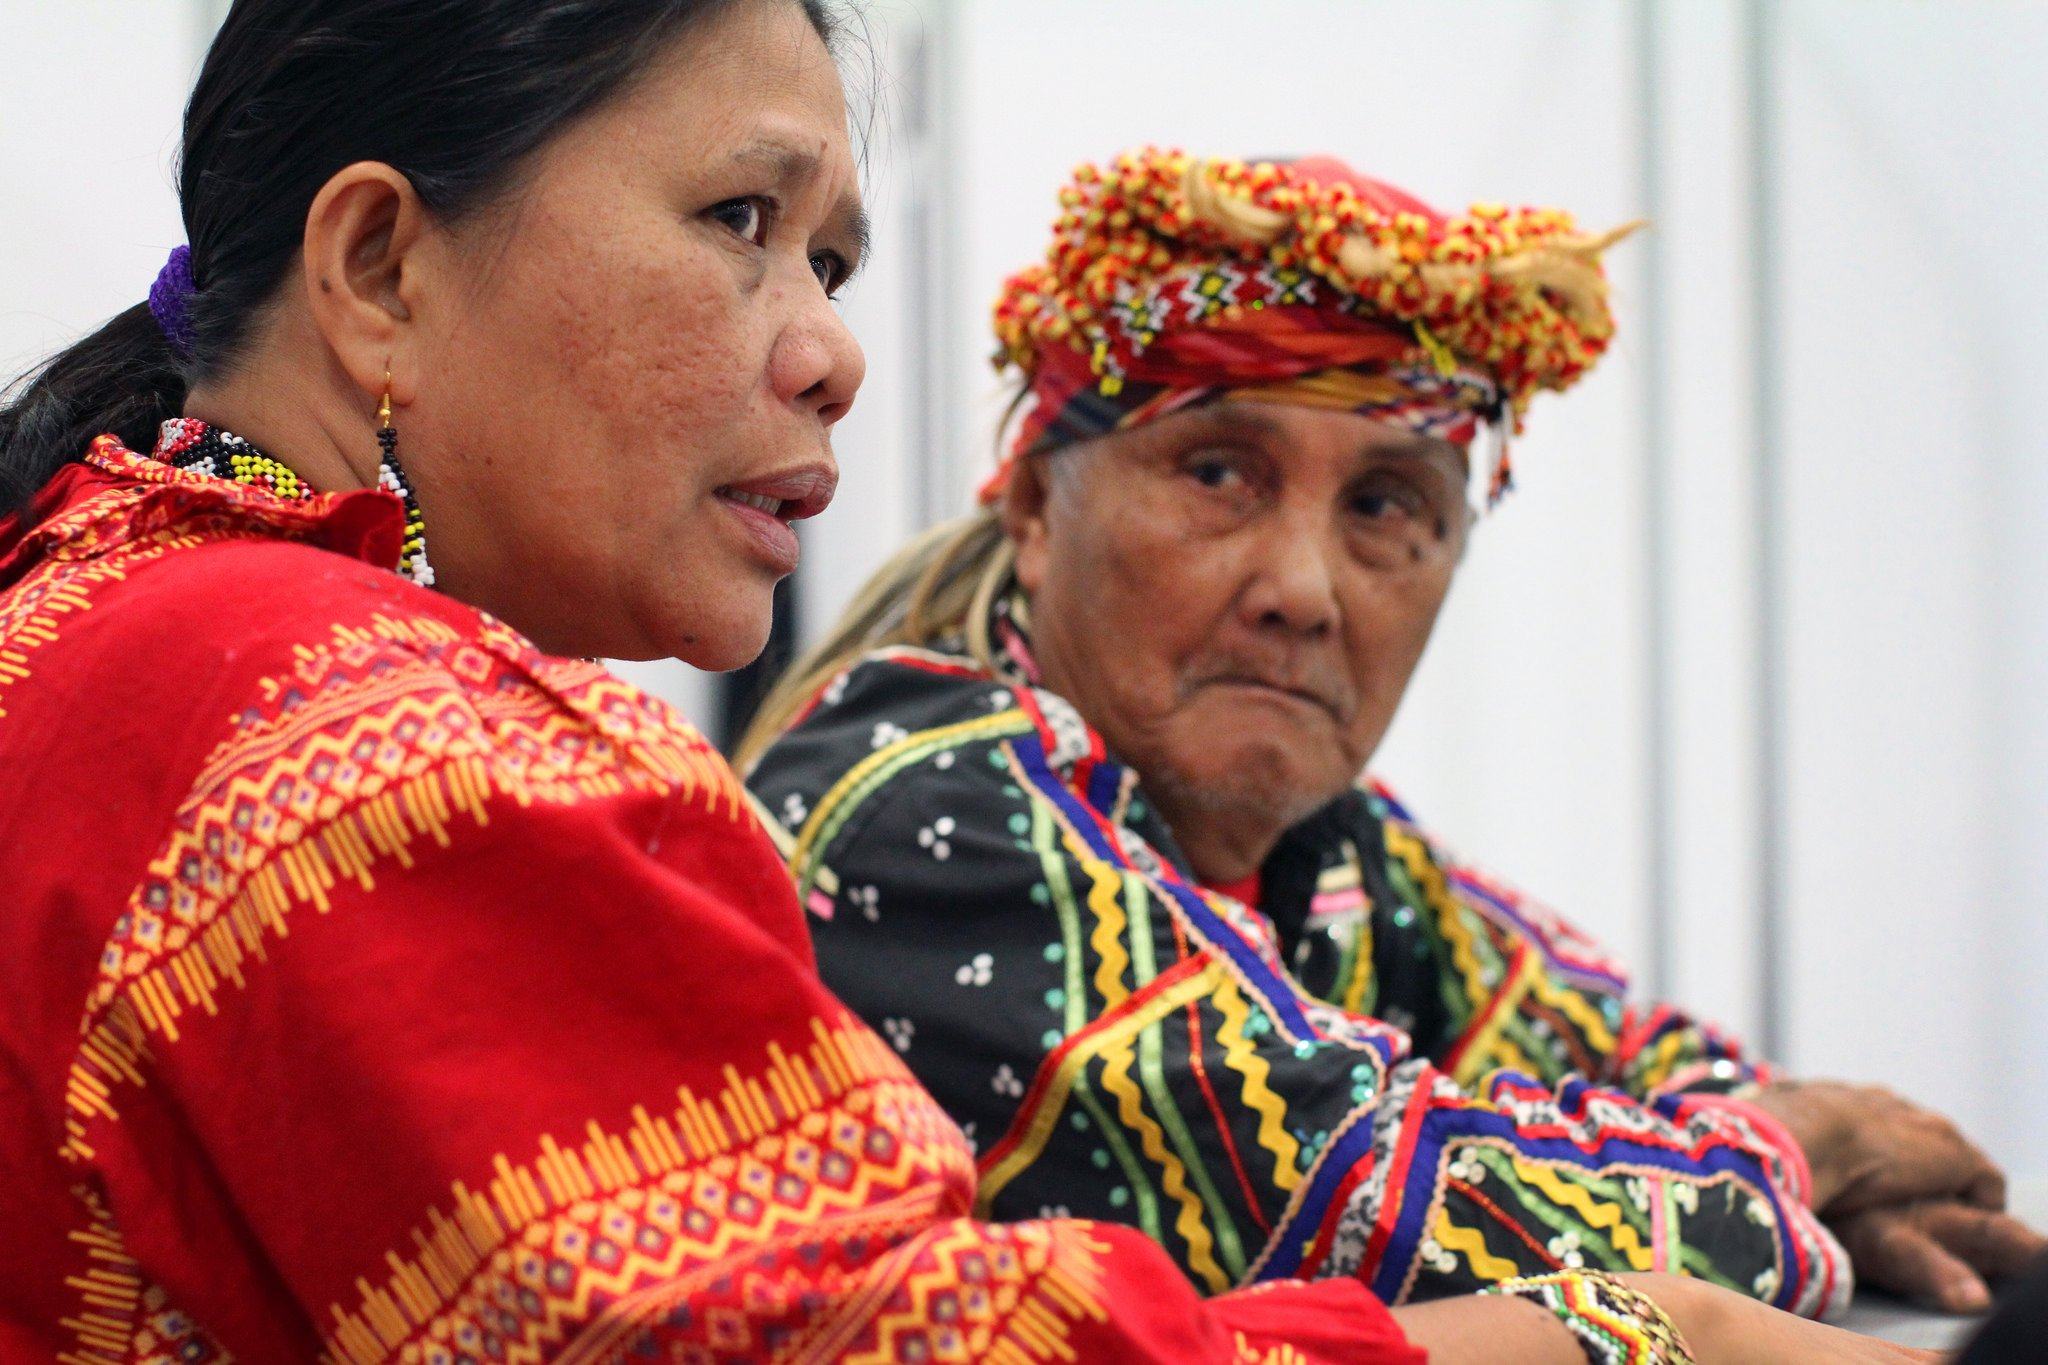 Norma Capuyan and Monico Cayon, indigenous leaders from the island of Mindanao in the southern Philippines, answer questions in the news area at the 2016 United Methodist General Conference at the Oregon Convention Center in Portland. Both shared experiences of discrimination and are part of the Lakbay Lumad USA tour.  Photo by Kathleen Barry, UMNS.